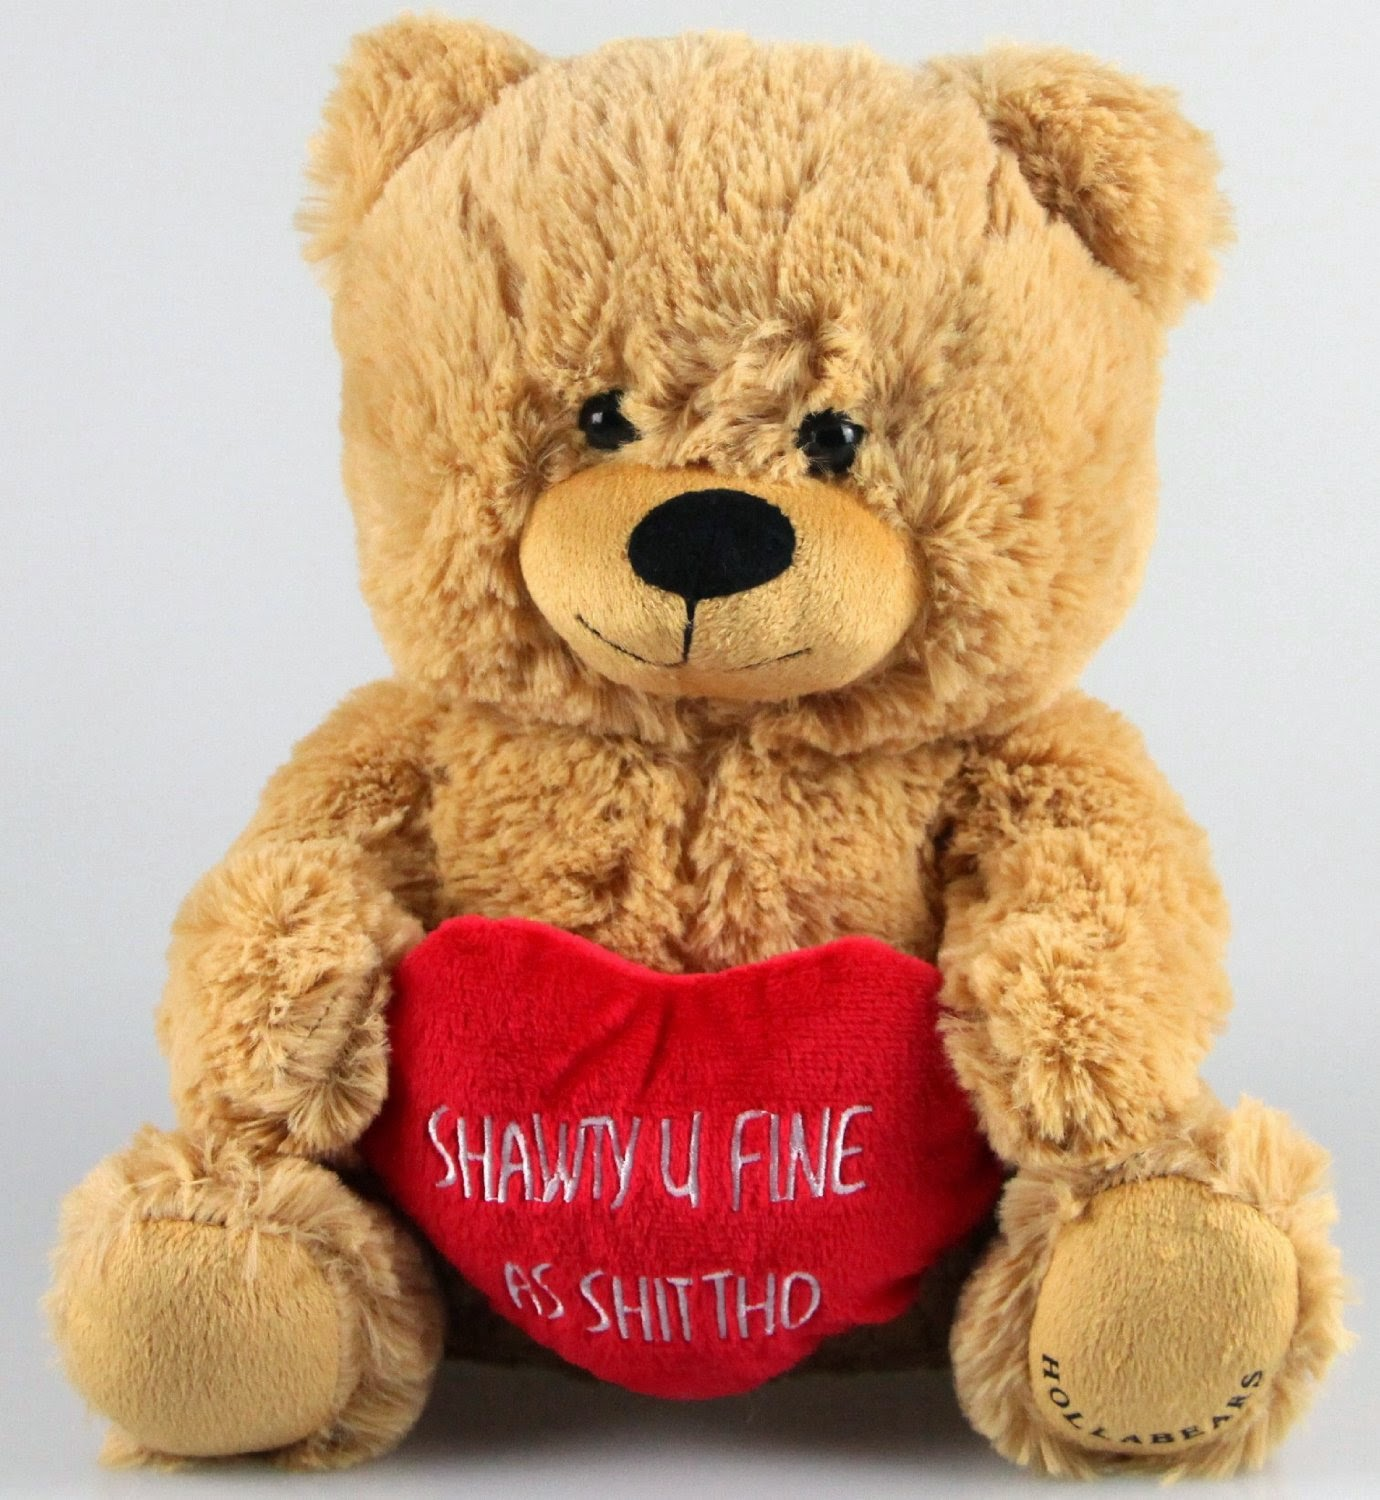 "Hollabears 10"" Shawty U Fine As Shit Tho Teddy Bear with High Standards"